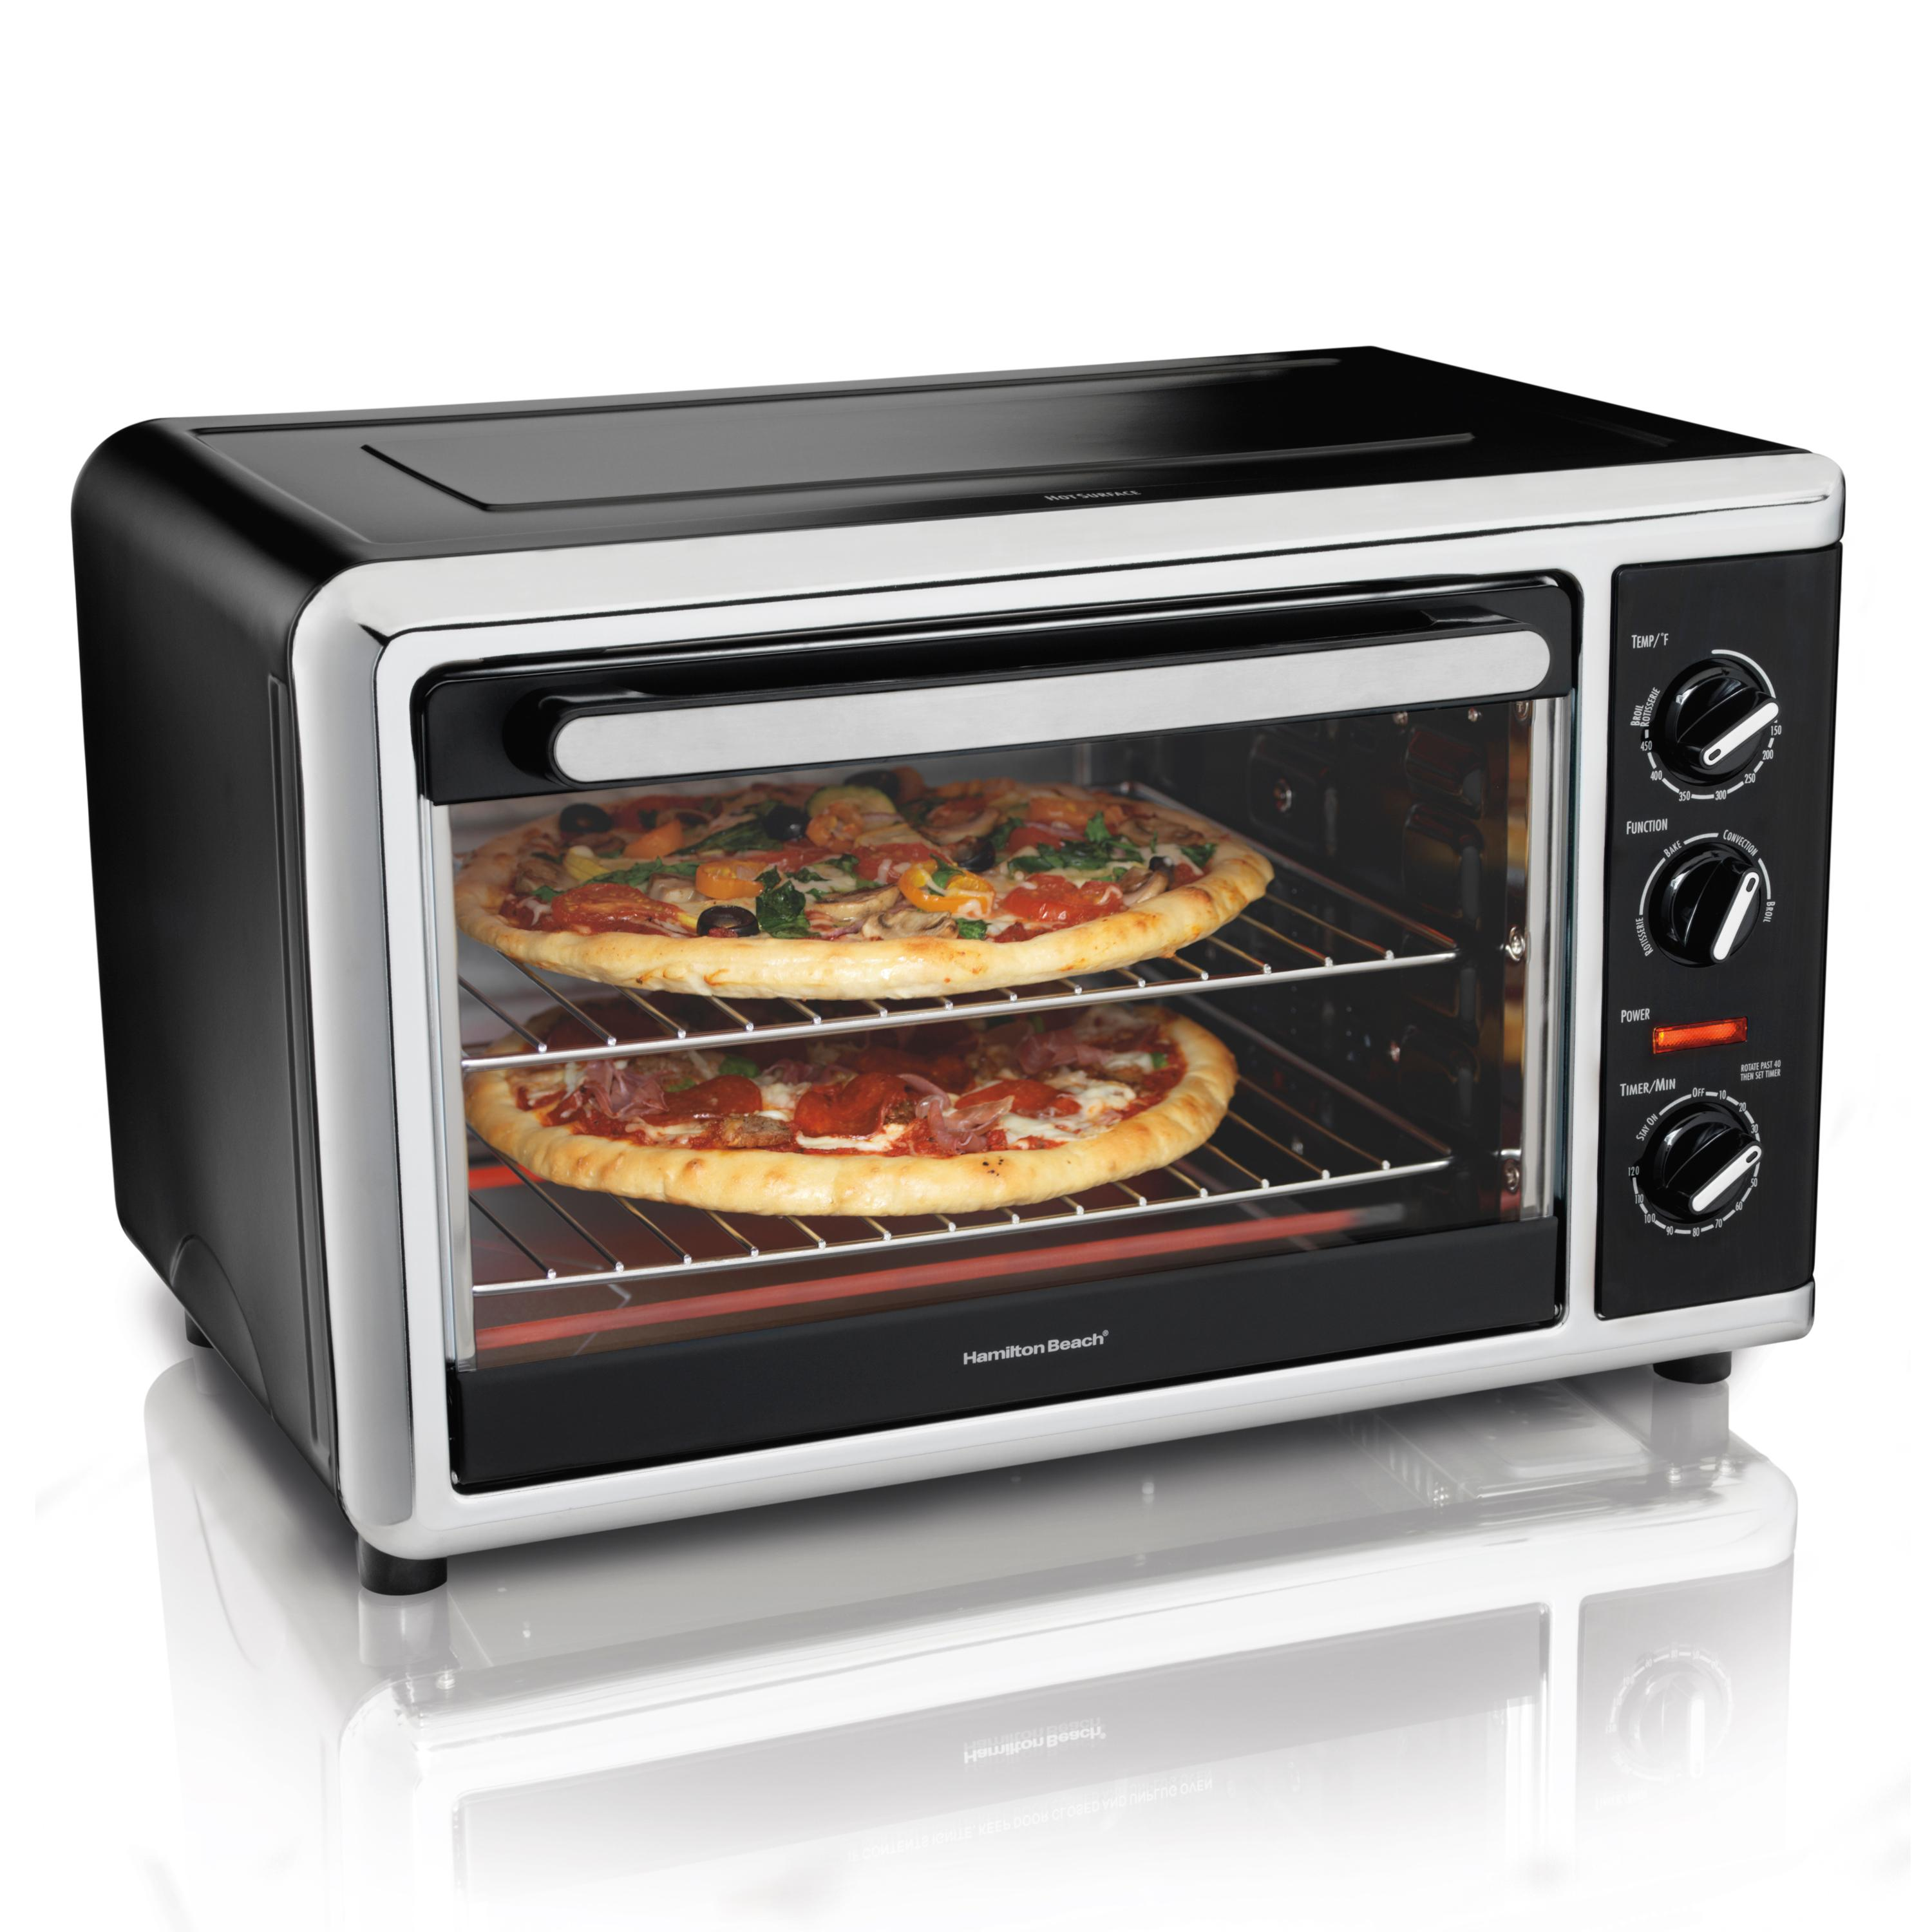 home ca oven beach dp amazon ovens toaster larger ae slice kitchen view hamilton